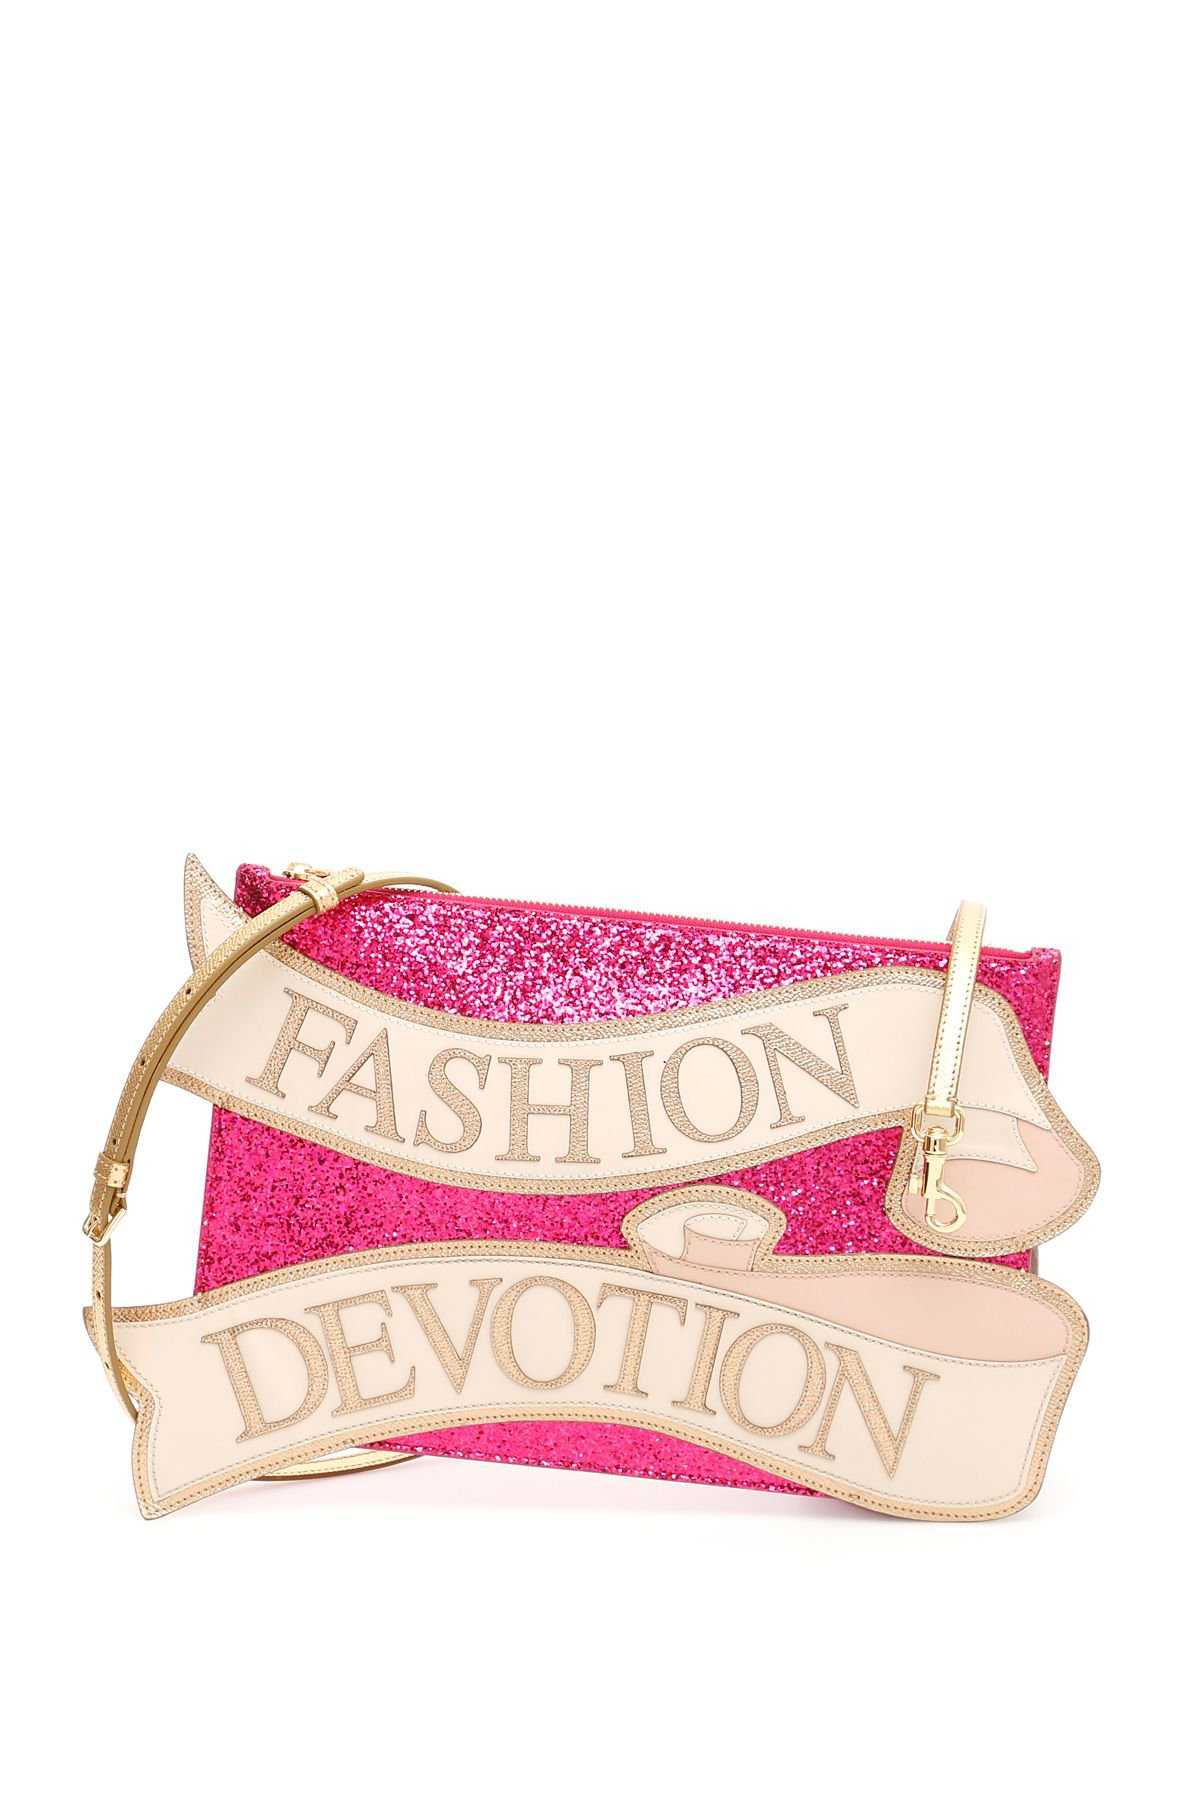 Dolce & Gabbana Fashion Devotion Clutch